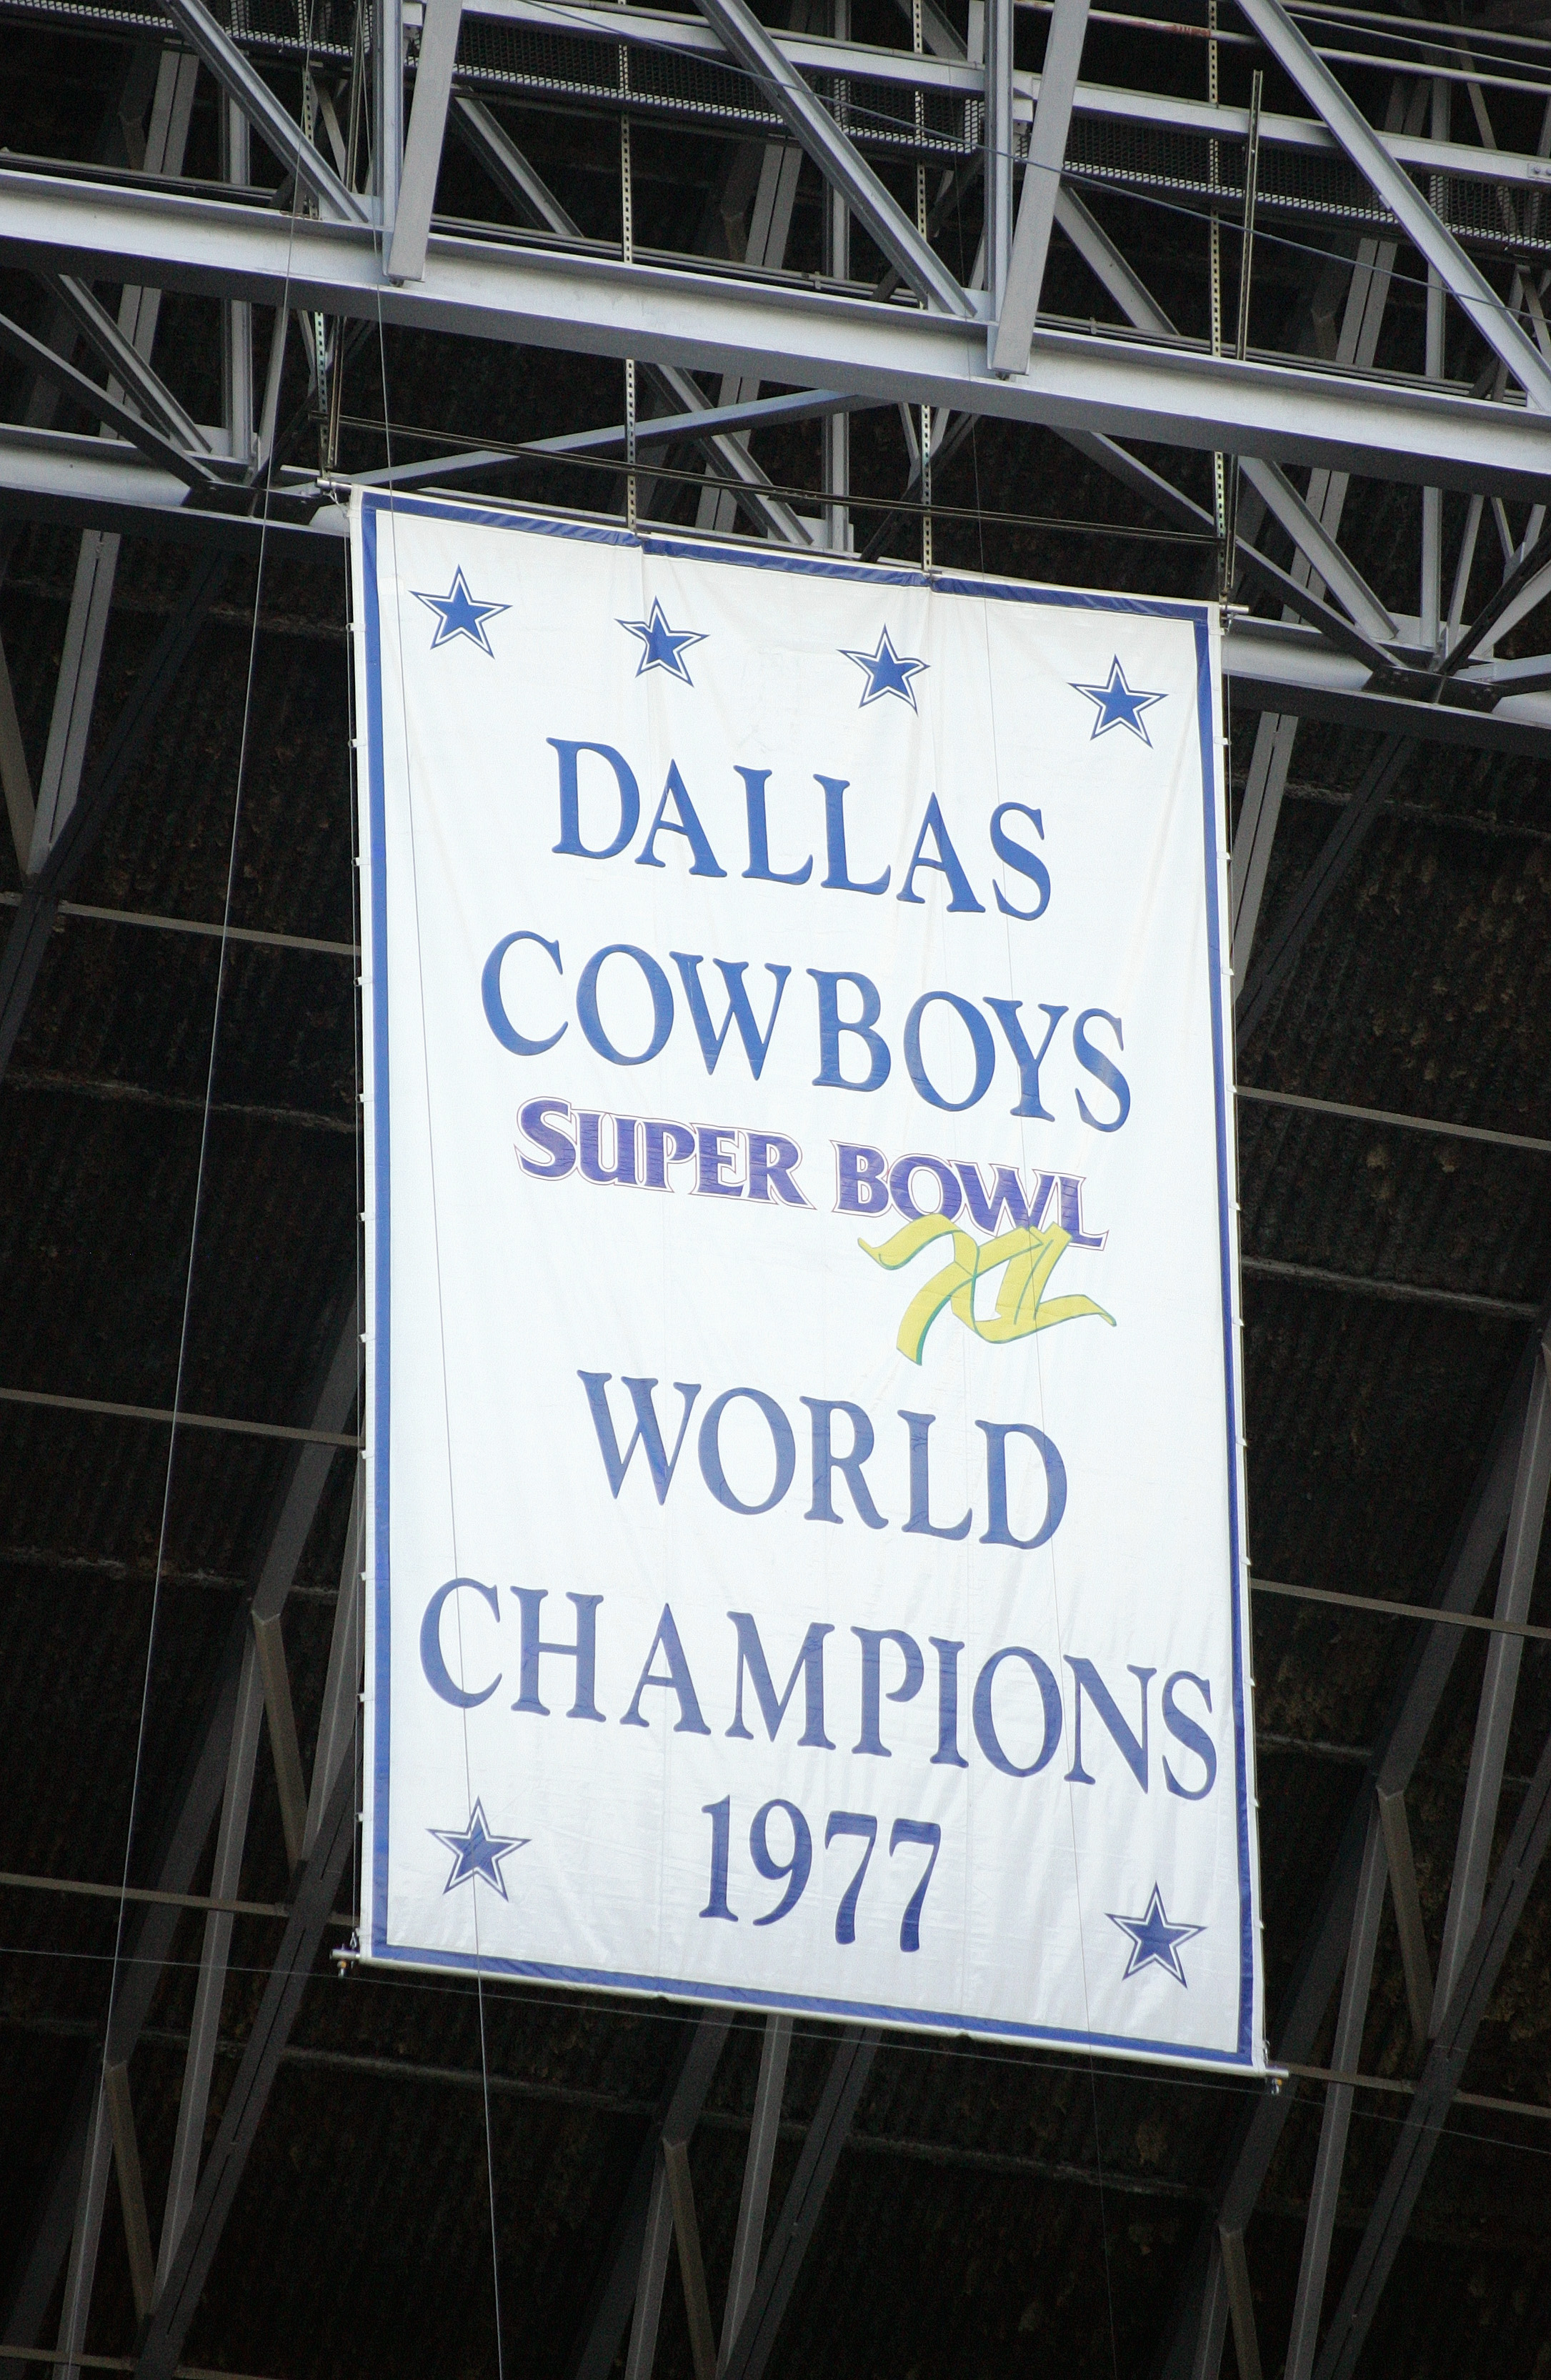 IRVING, TX - NOVEMBER 20:  A banner hangs from the rafters commemorating the 1977 Dallas Cowboys as Super Bowl XI Champions during the game between the Detroit Lions and the Dallas Cowboys on November 20, 2005 at Texas Stadium in Irving, Texas.  The Cowbo